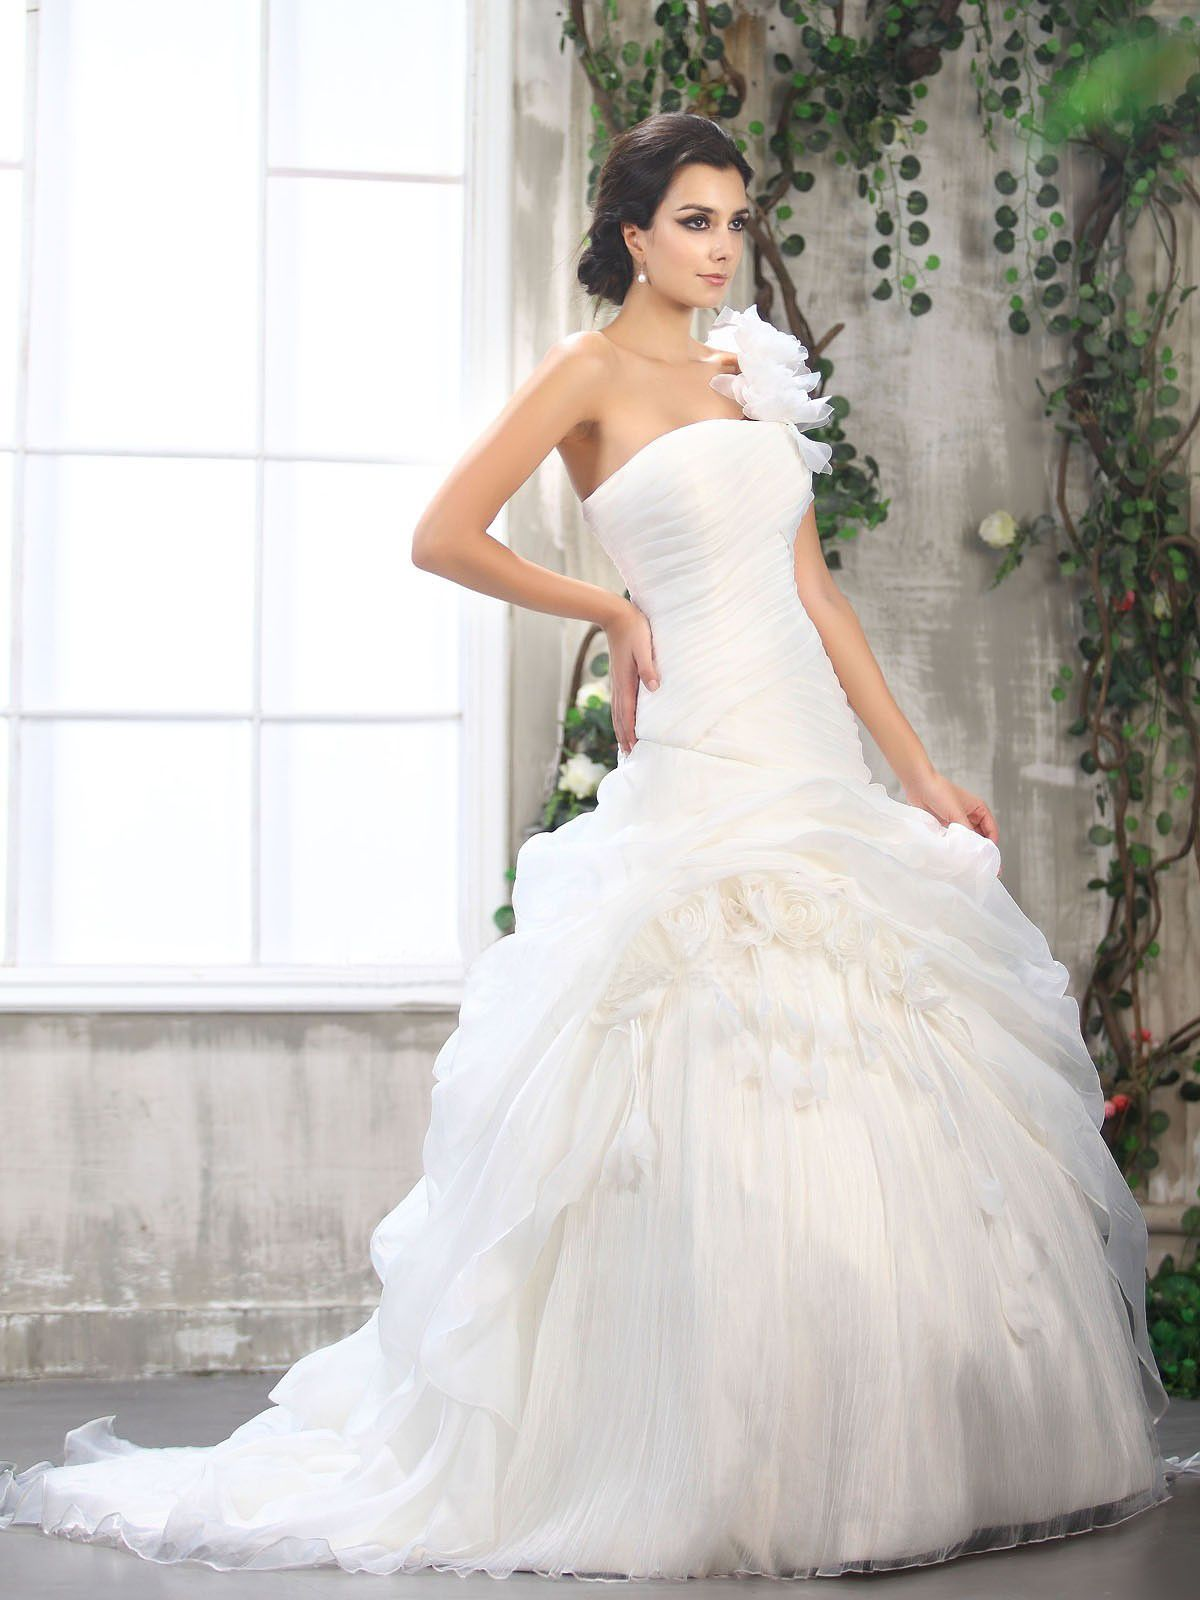 Wedding dresses uk google search my wedding dress pinterest strap wedding dresses ombrellifo Image collections